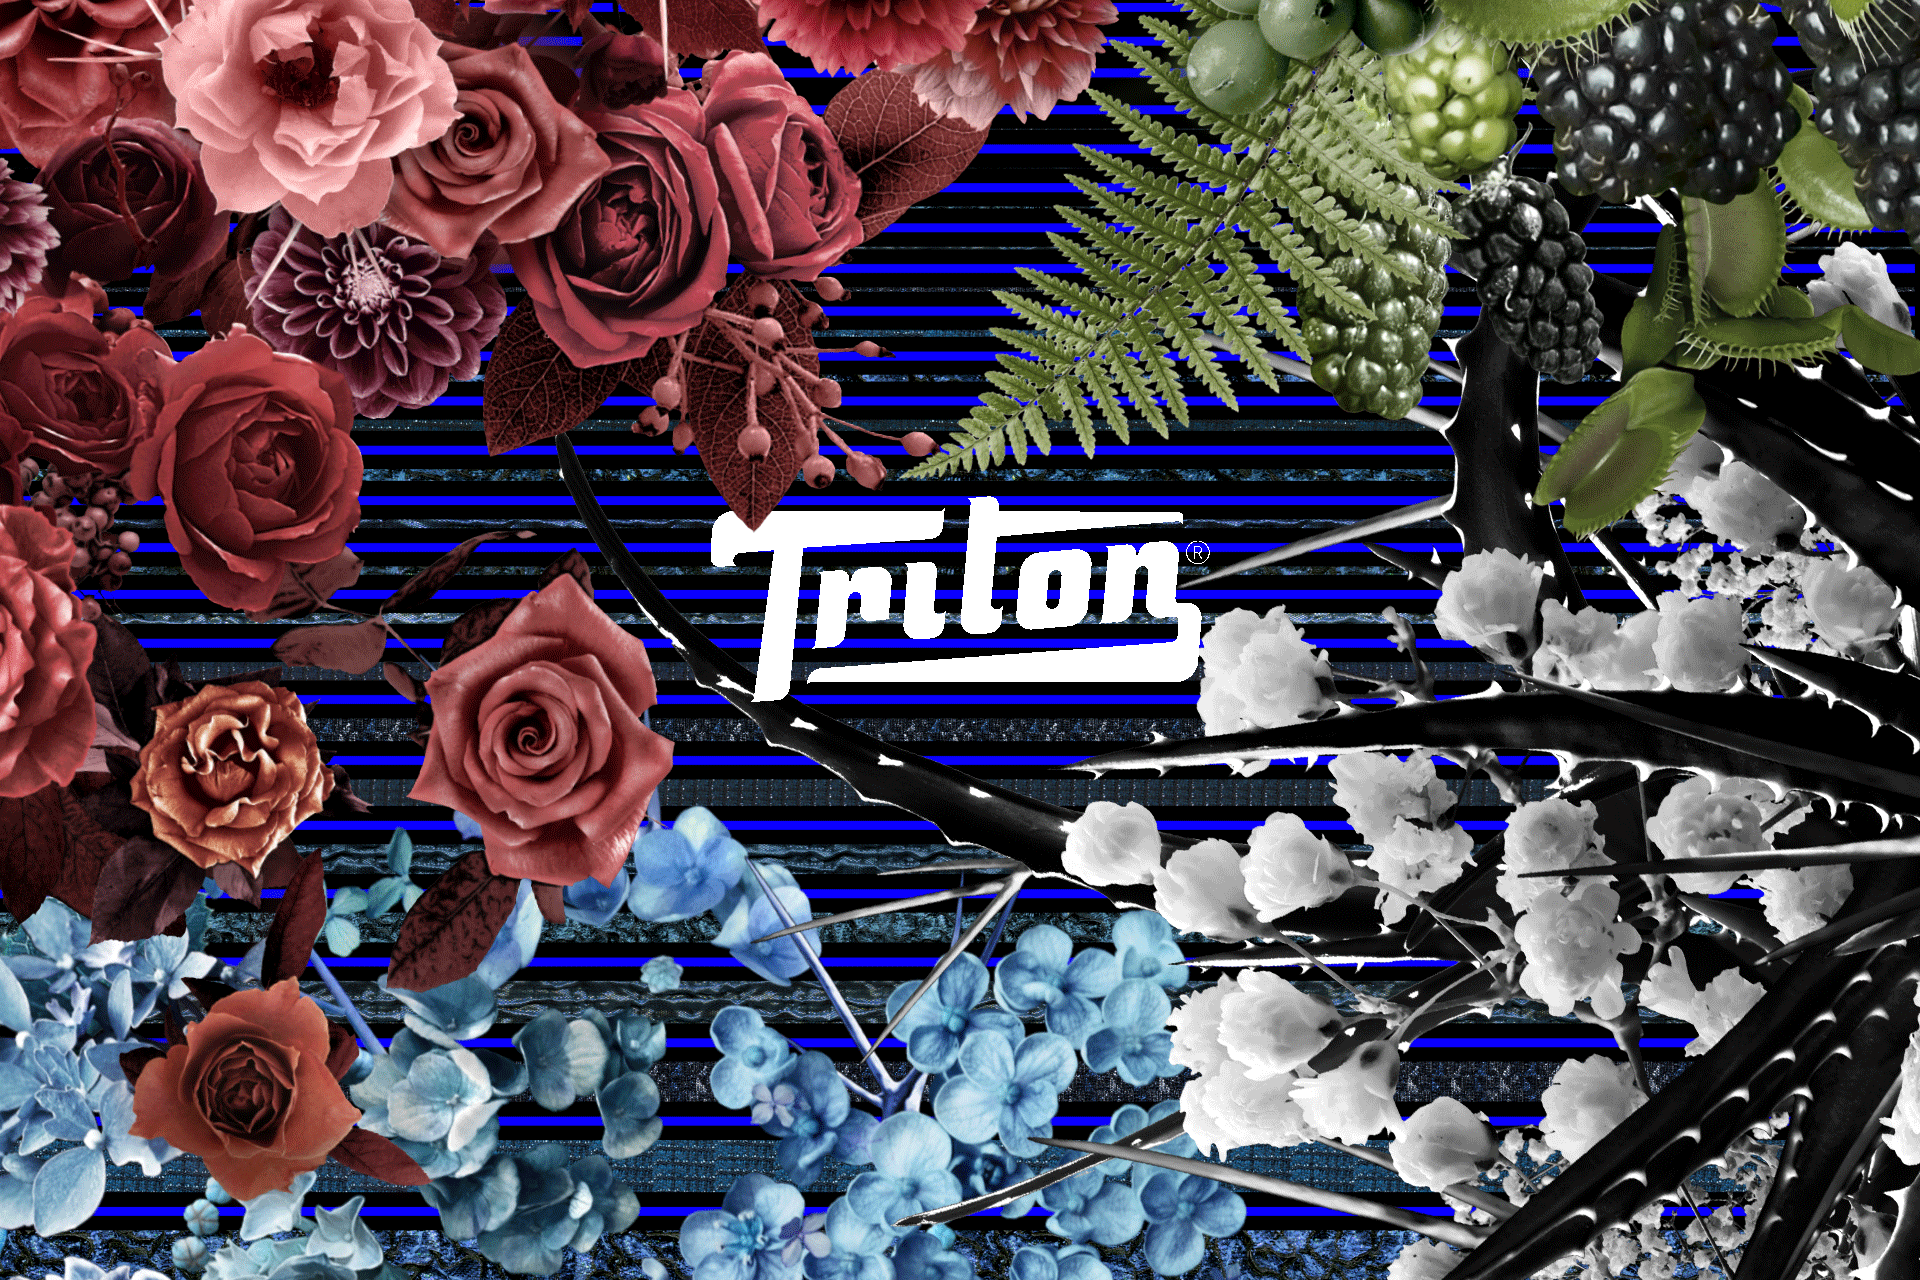 Triton - SPFW Winter 13